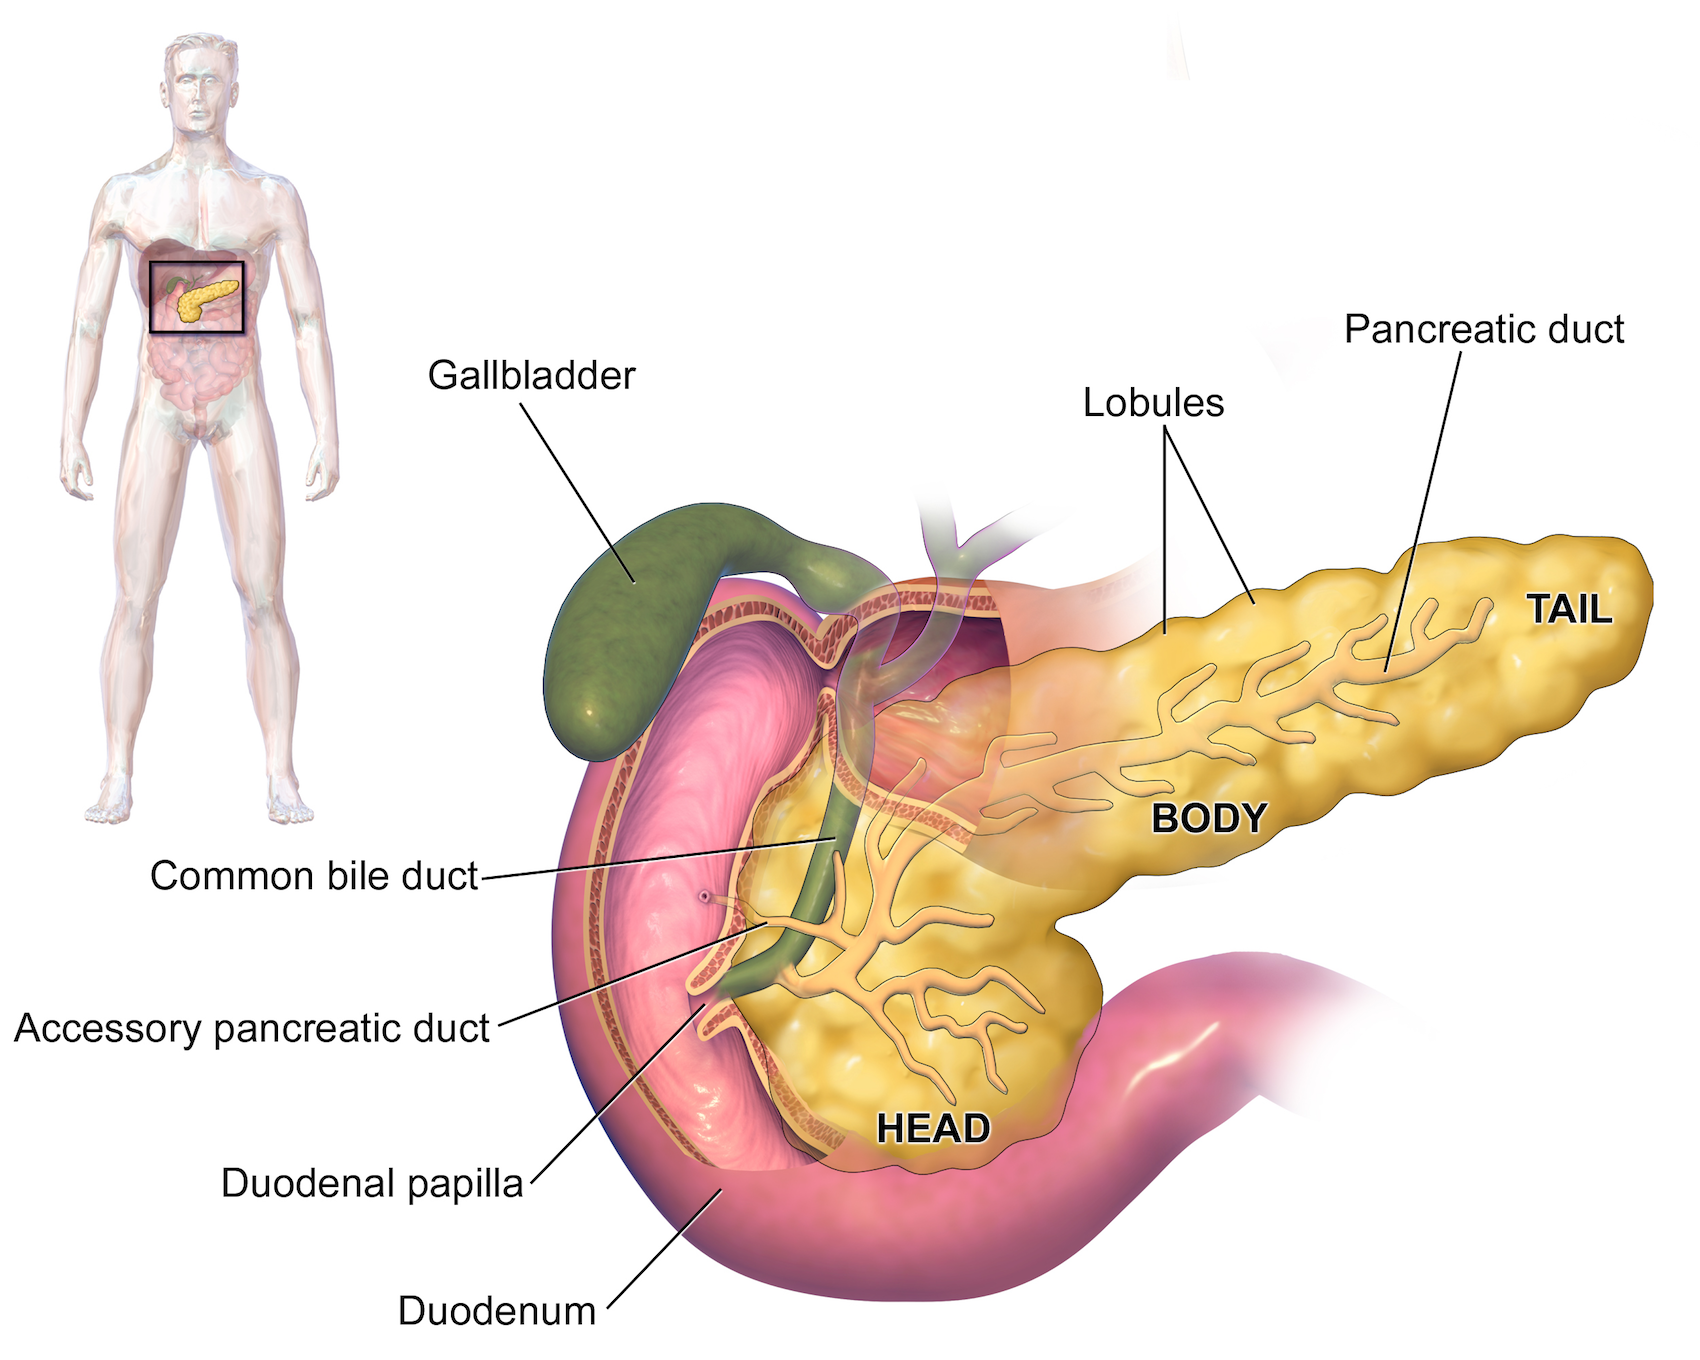 Department Of Surgery Cholecystectomy Gallbladder Removal